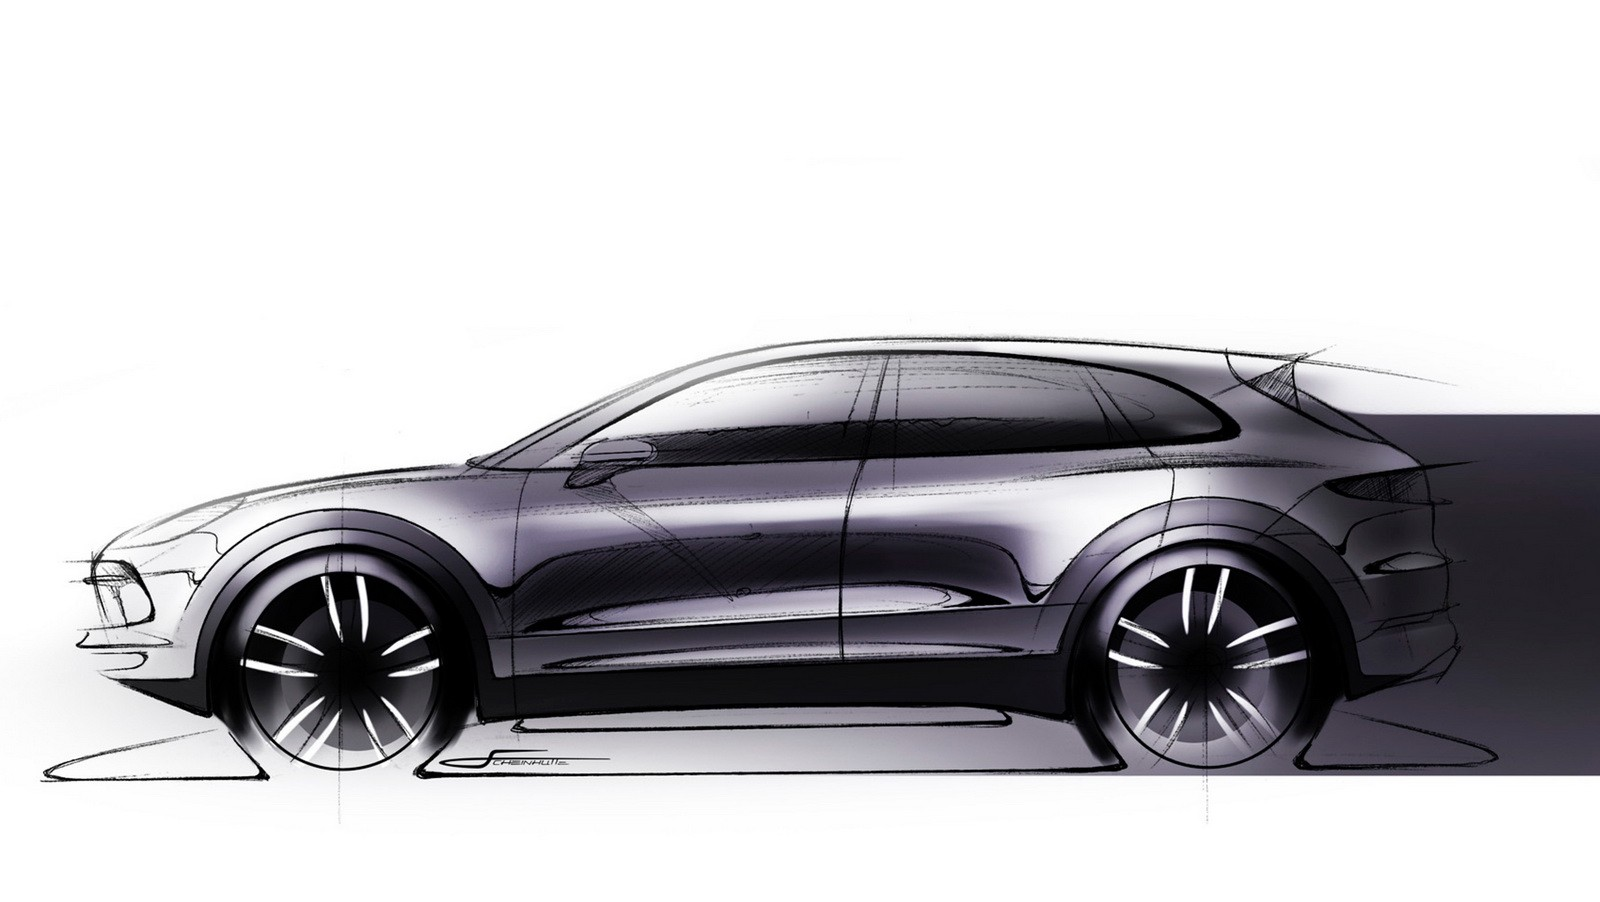 2018 Porsche Cayenne Sketch Reveals Evolutionary Design ...